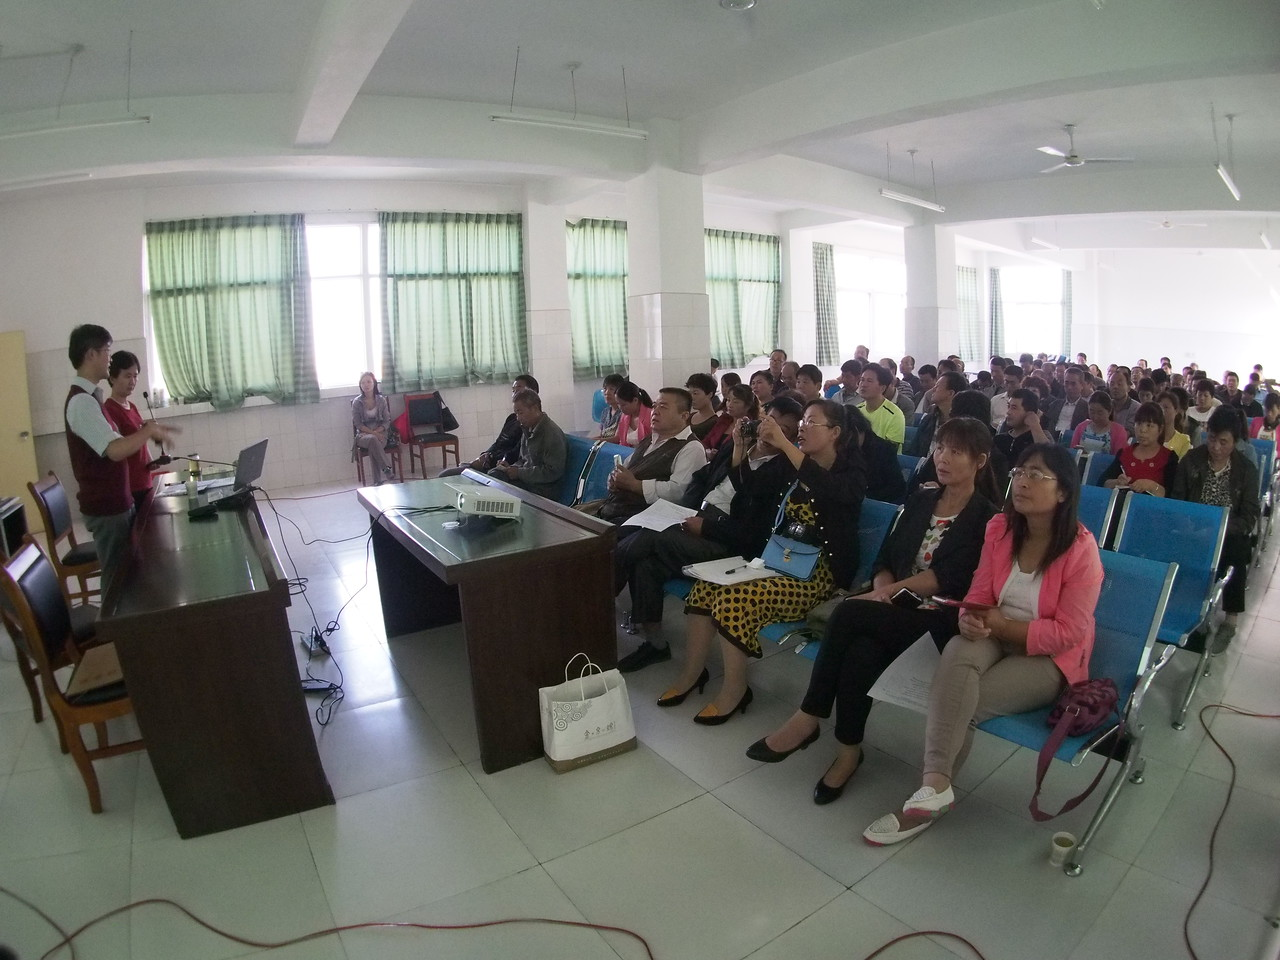 20150914_1045_1808 Village Doctor Training, Fuping County, Shaanxi